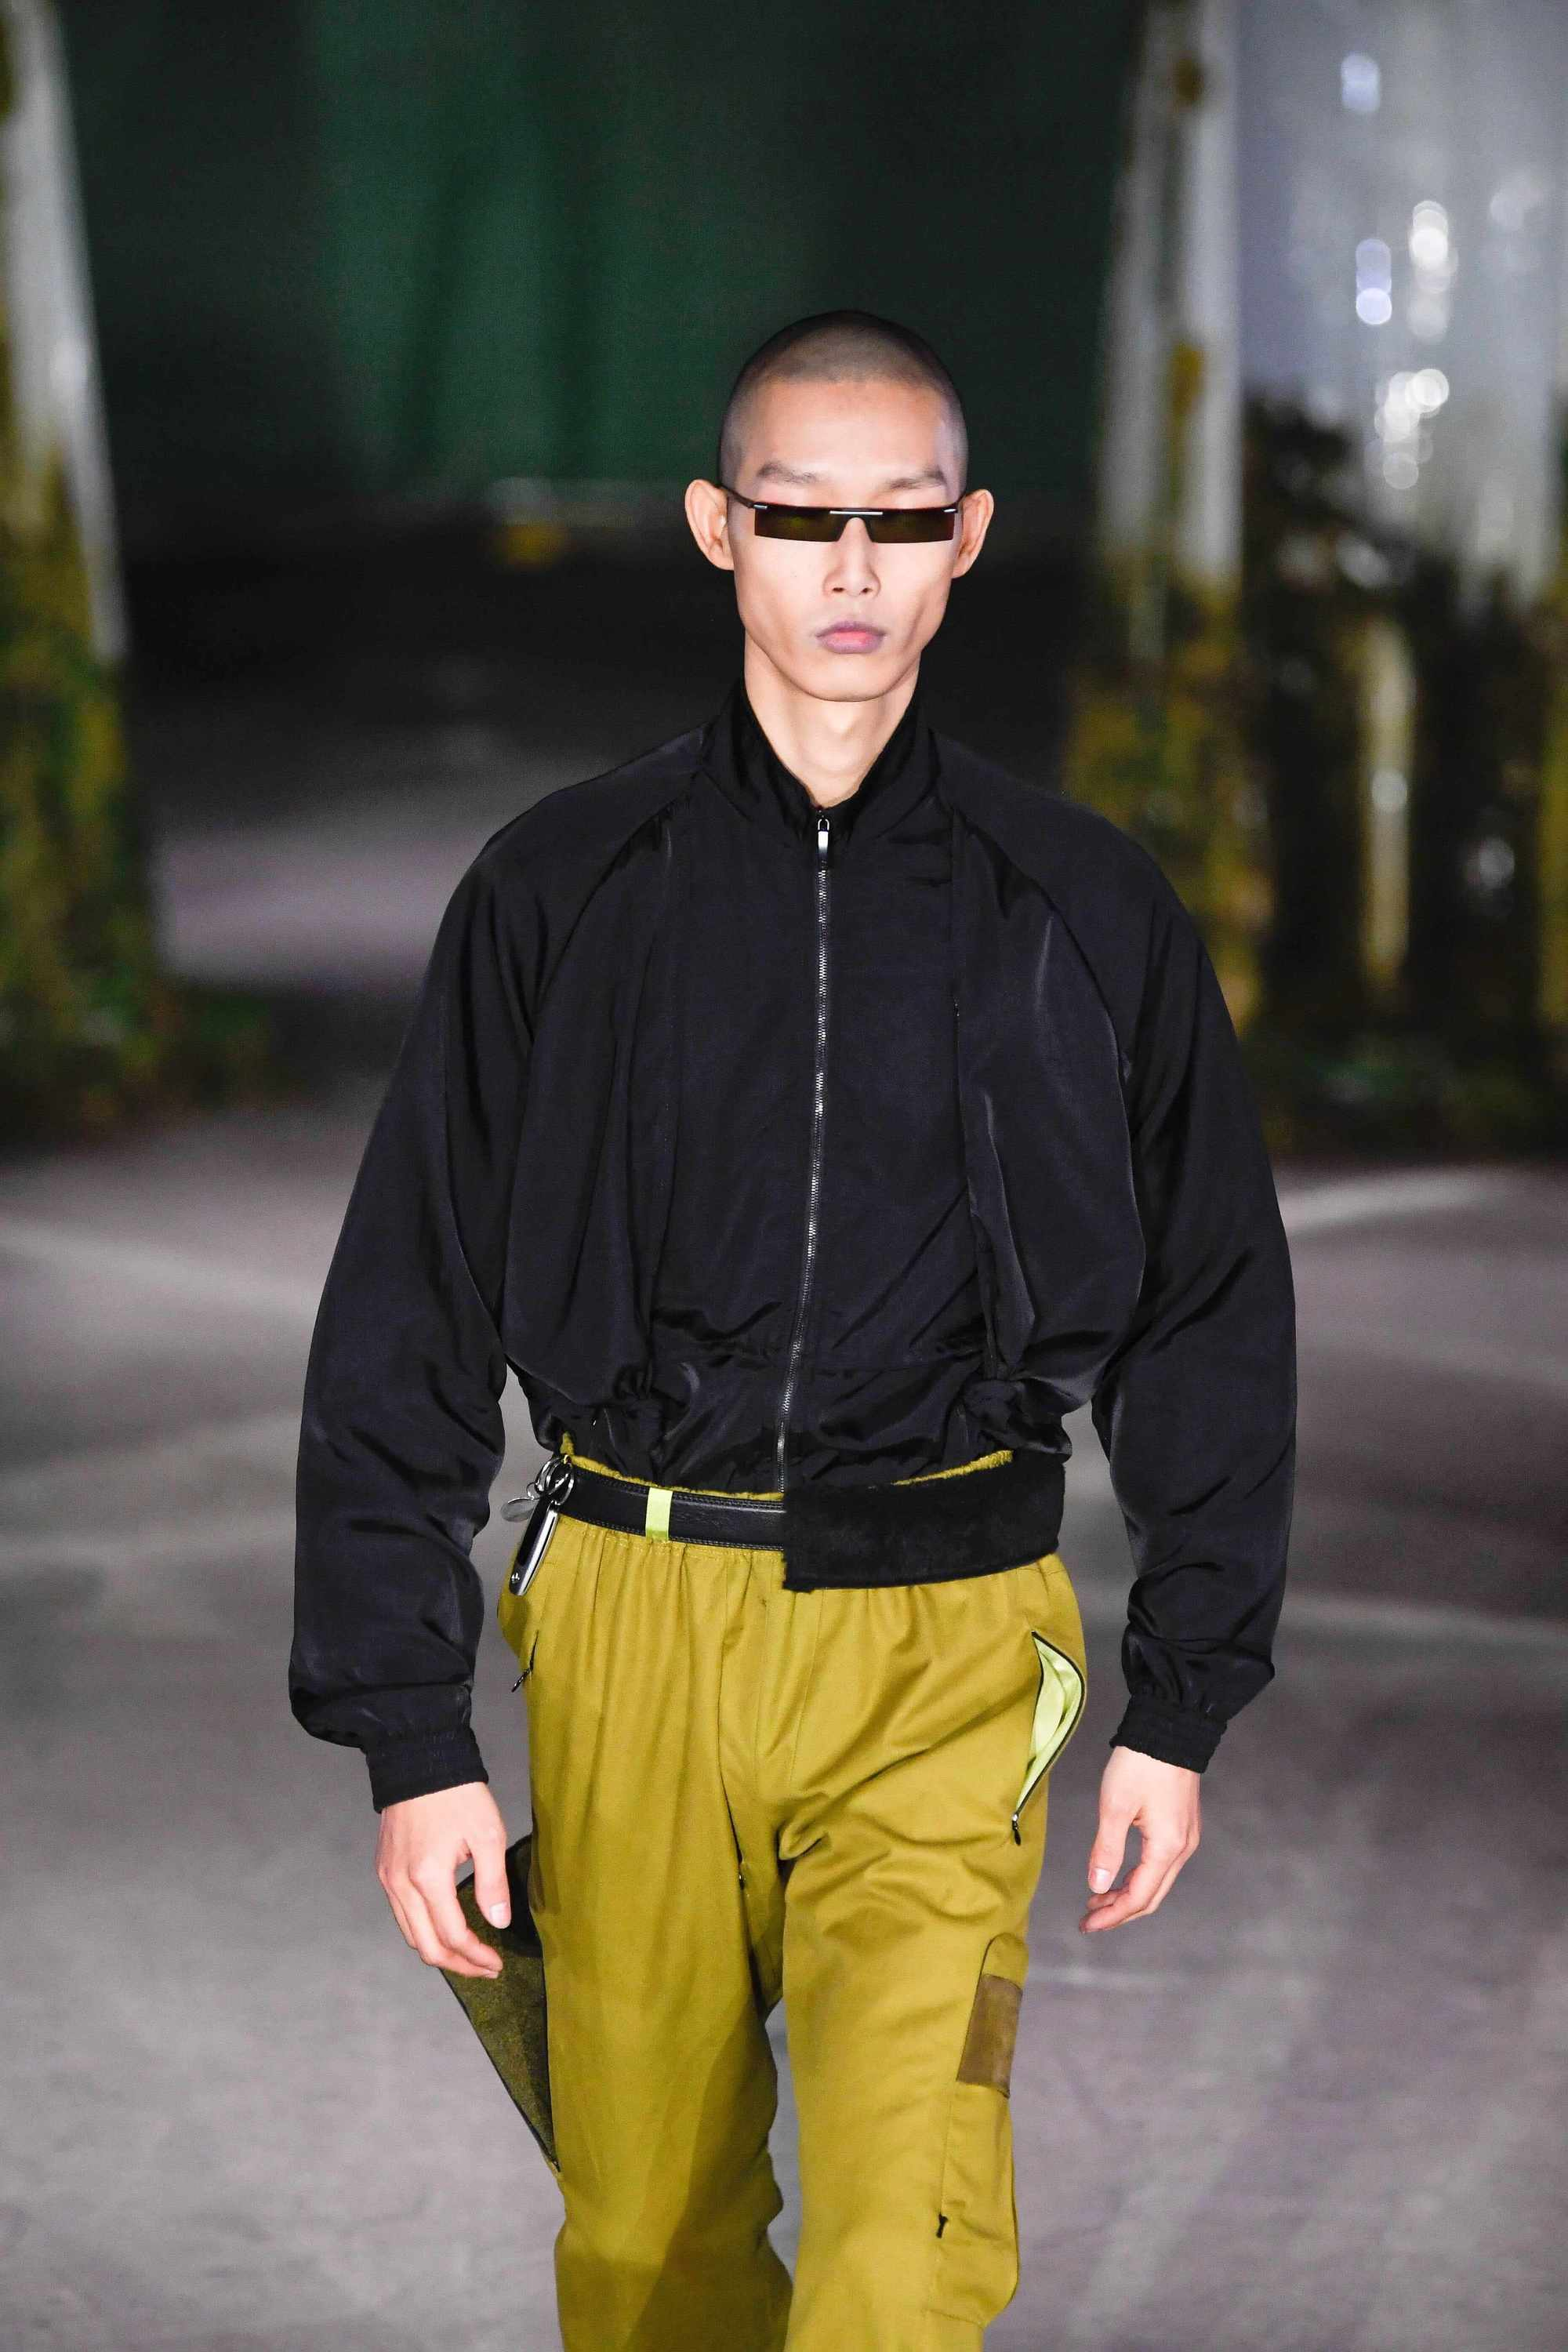 London Fashion Week Men's: Model on Cottweiler runway with shaved hair wearing micro black sunglasses.